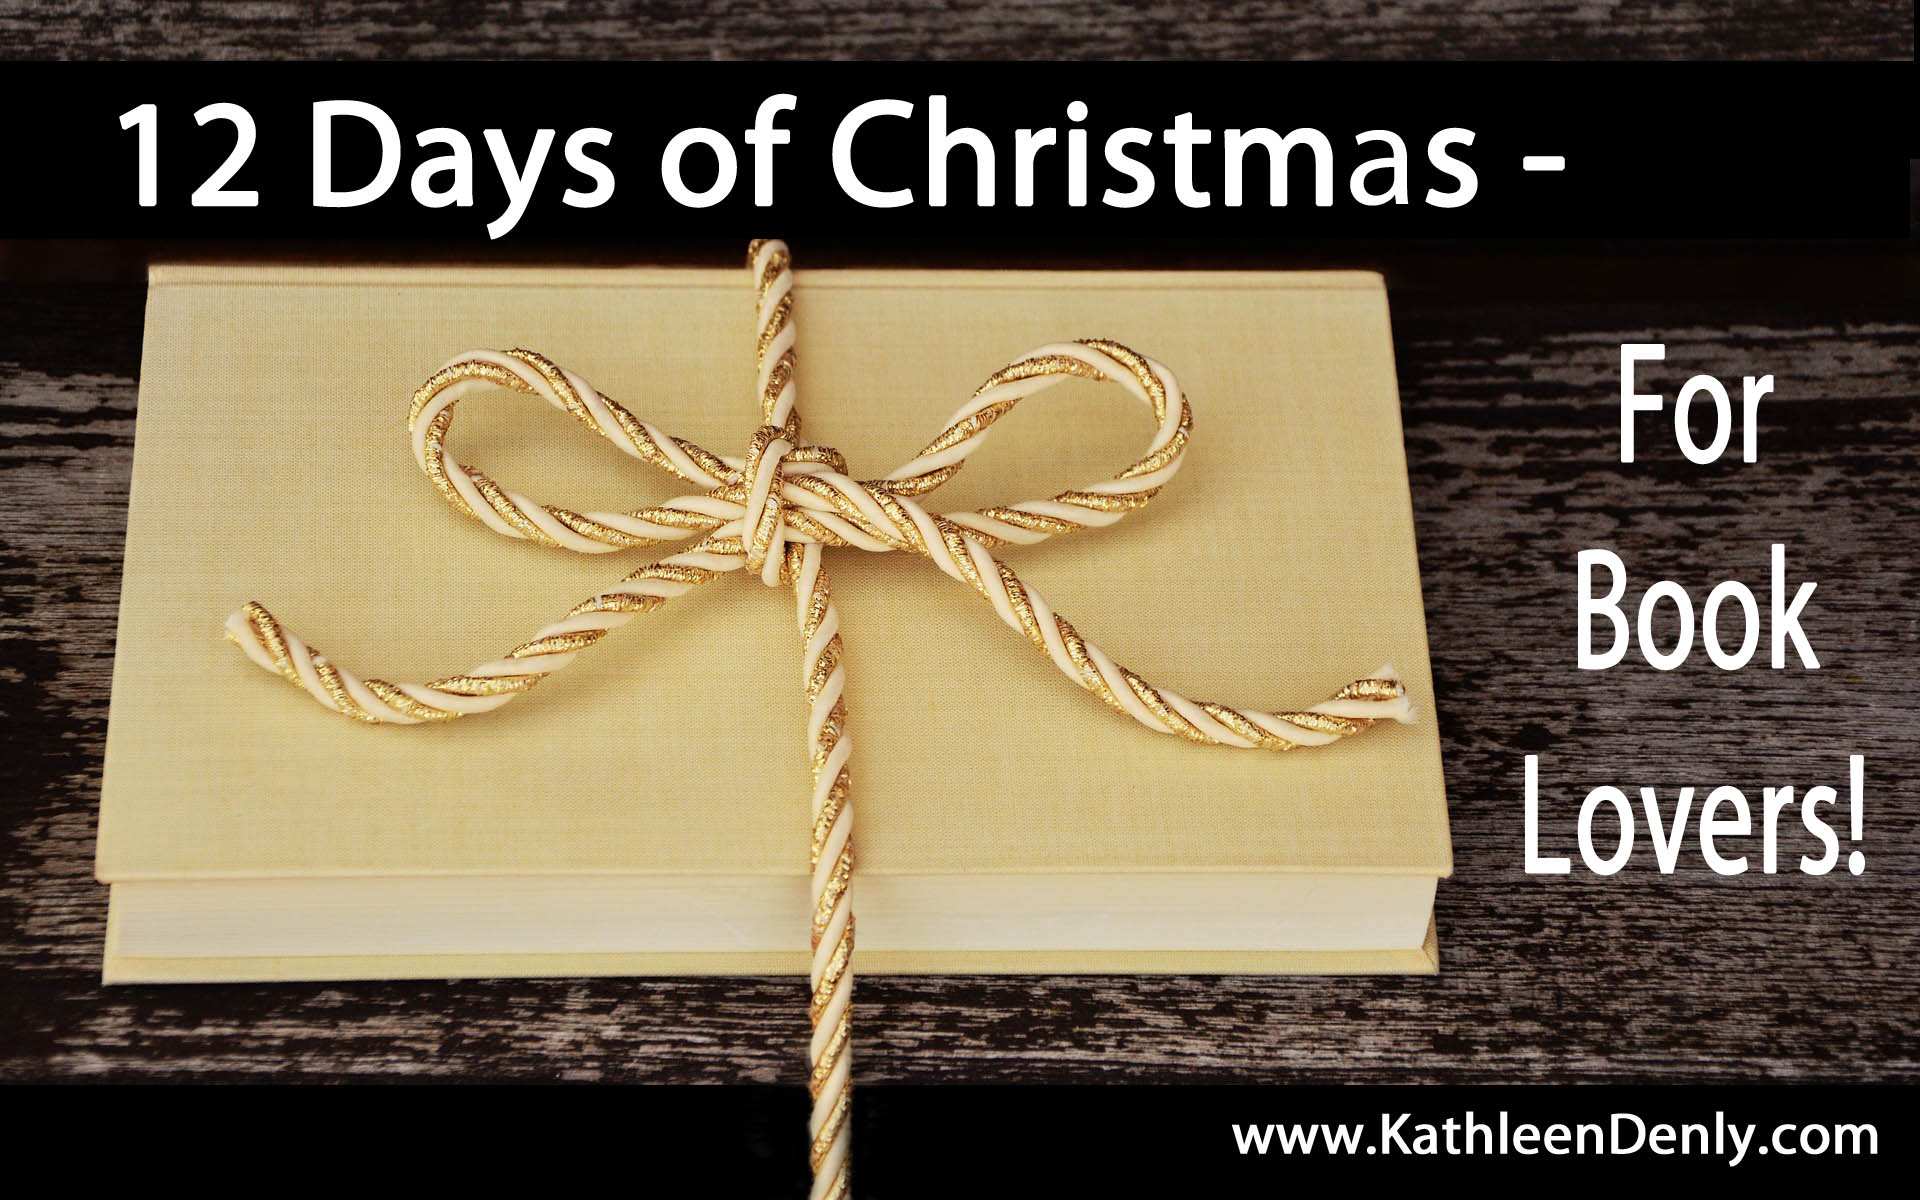 12 Days of Christmas for Book Lovers